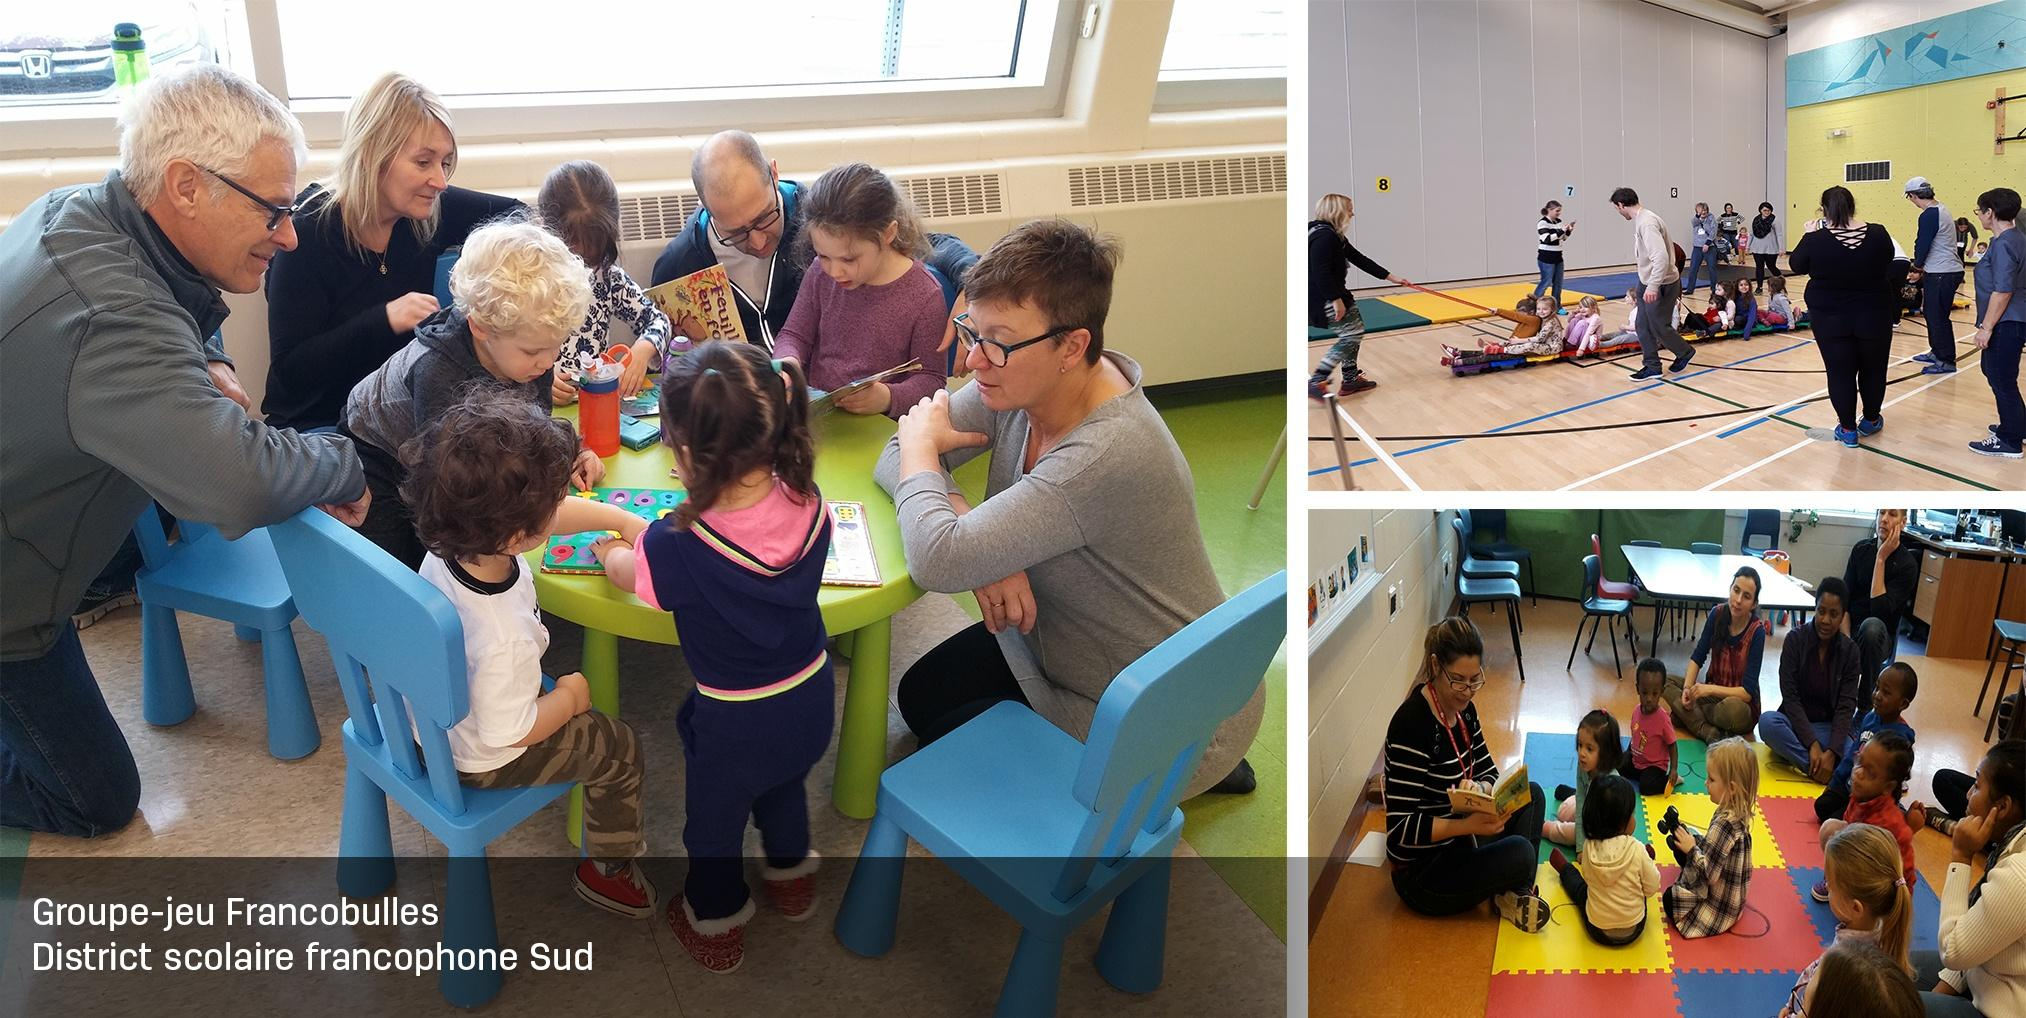 Francobulles Play Group